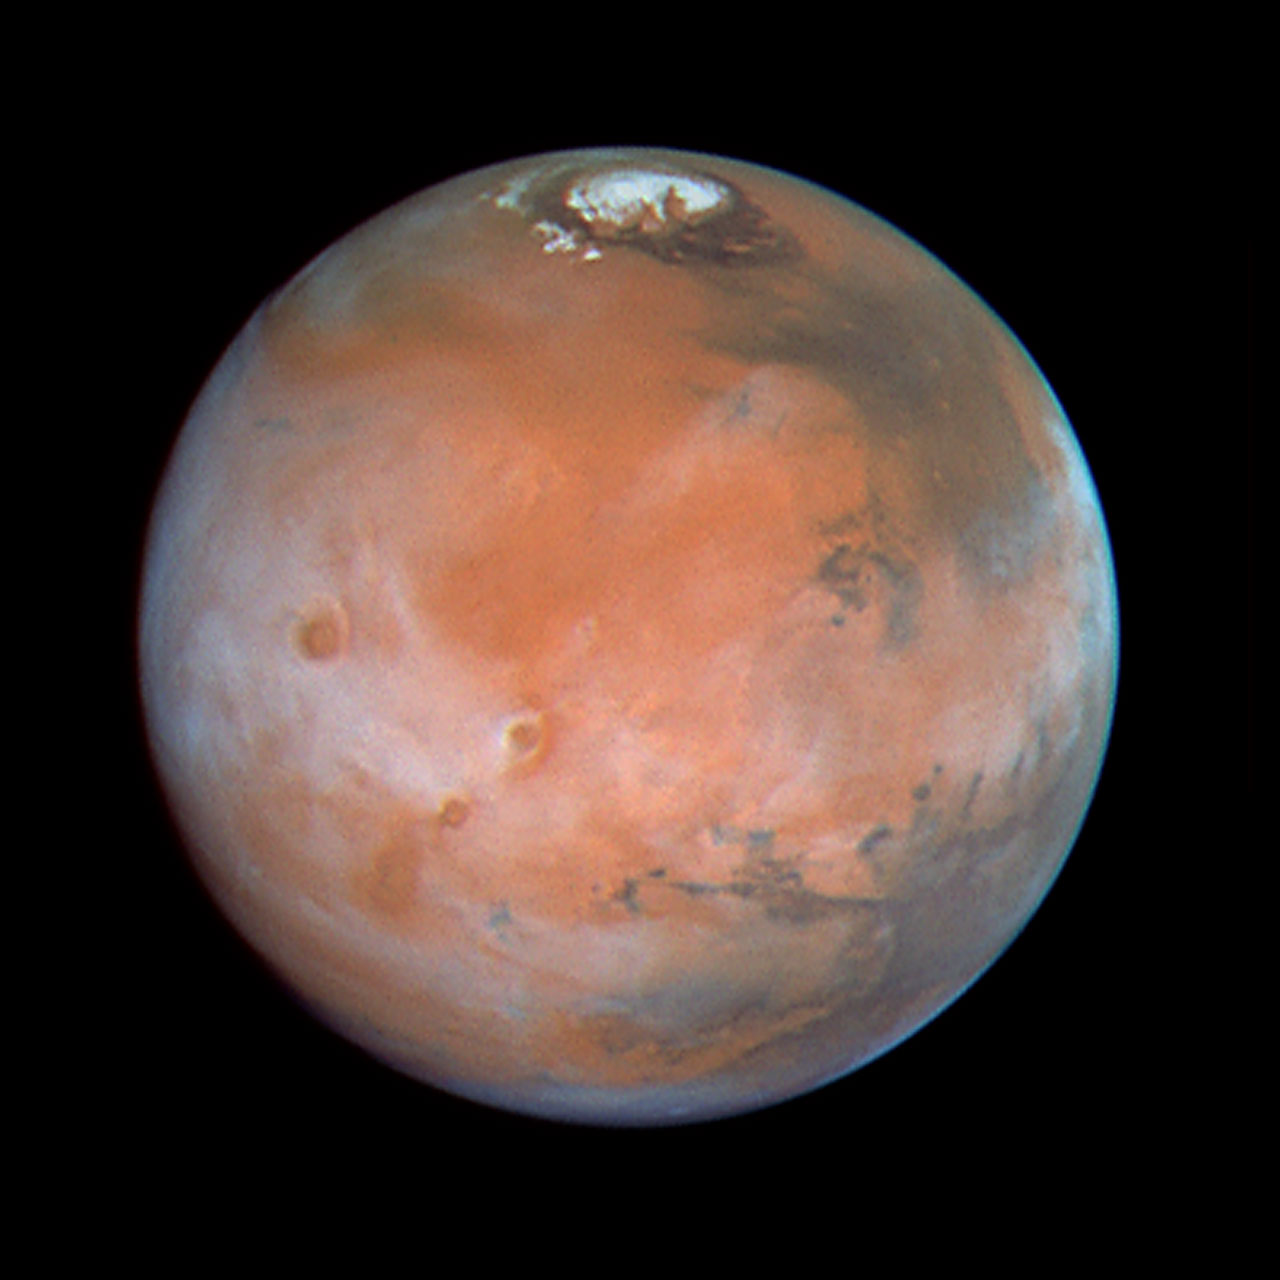 hubble images of mars - photo #8